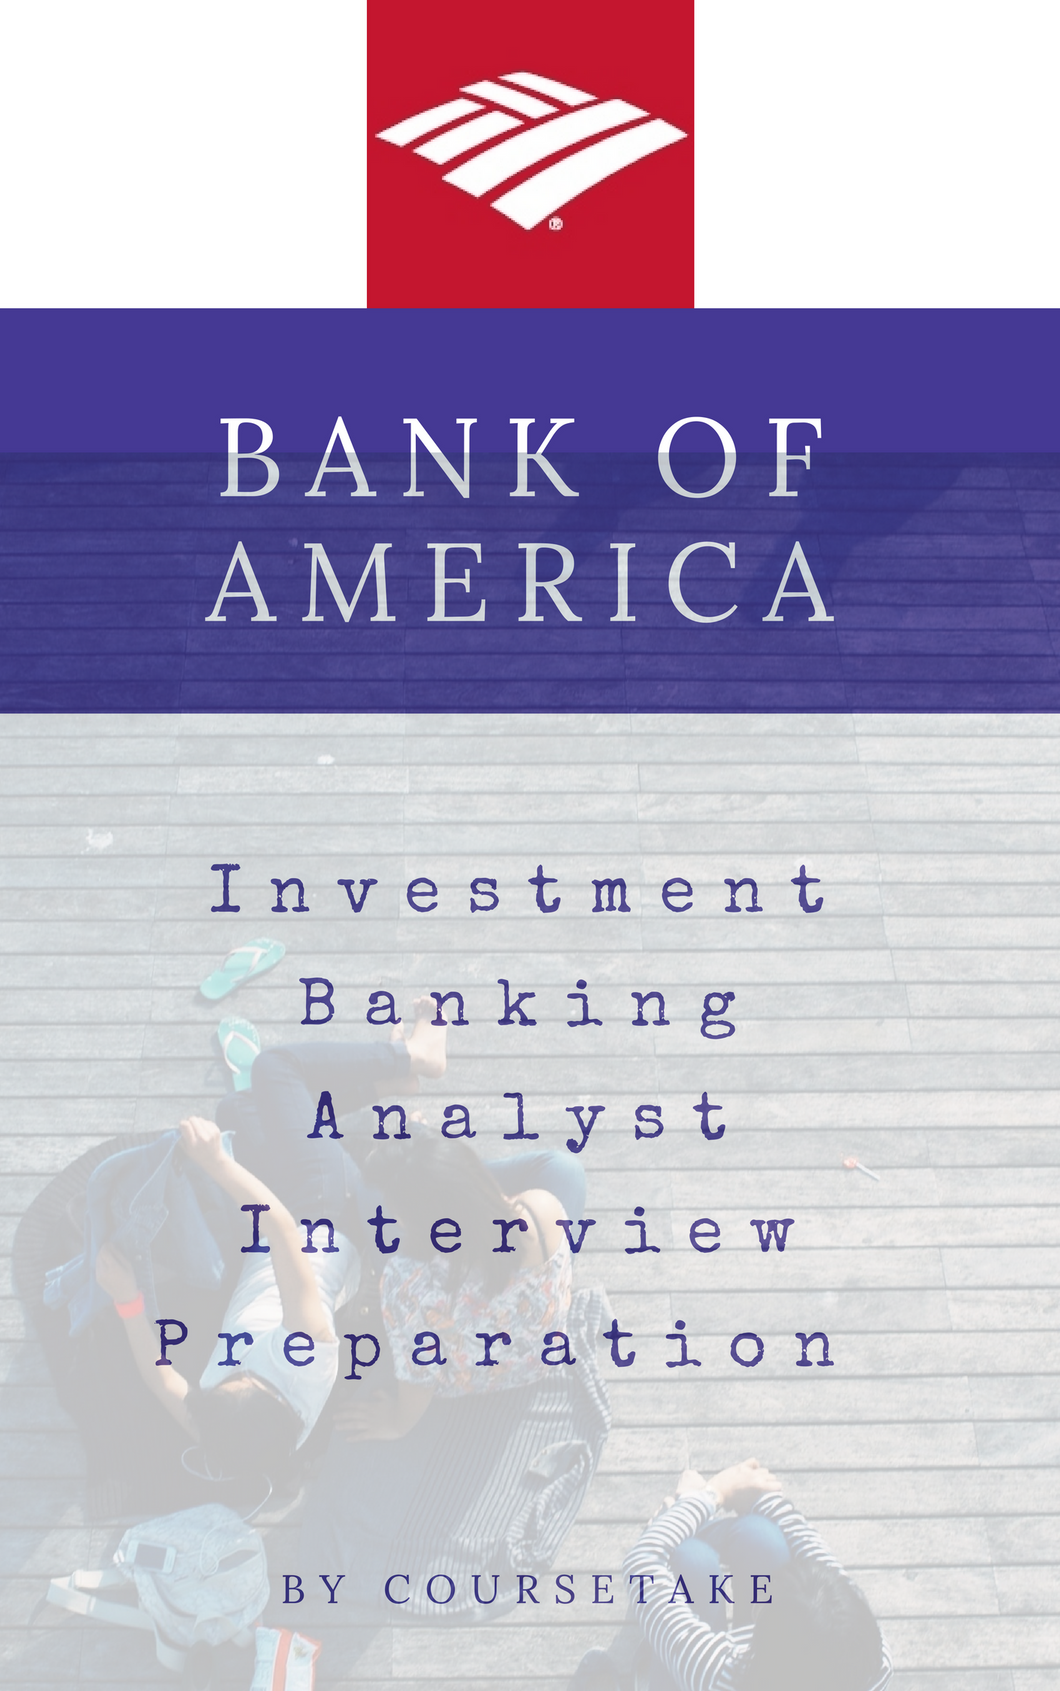 Bank of America Investment Banking Analyst Interview Preparation Study Guide